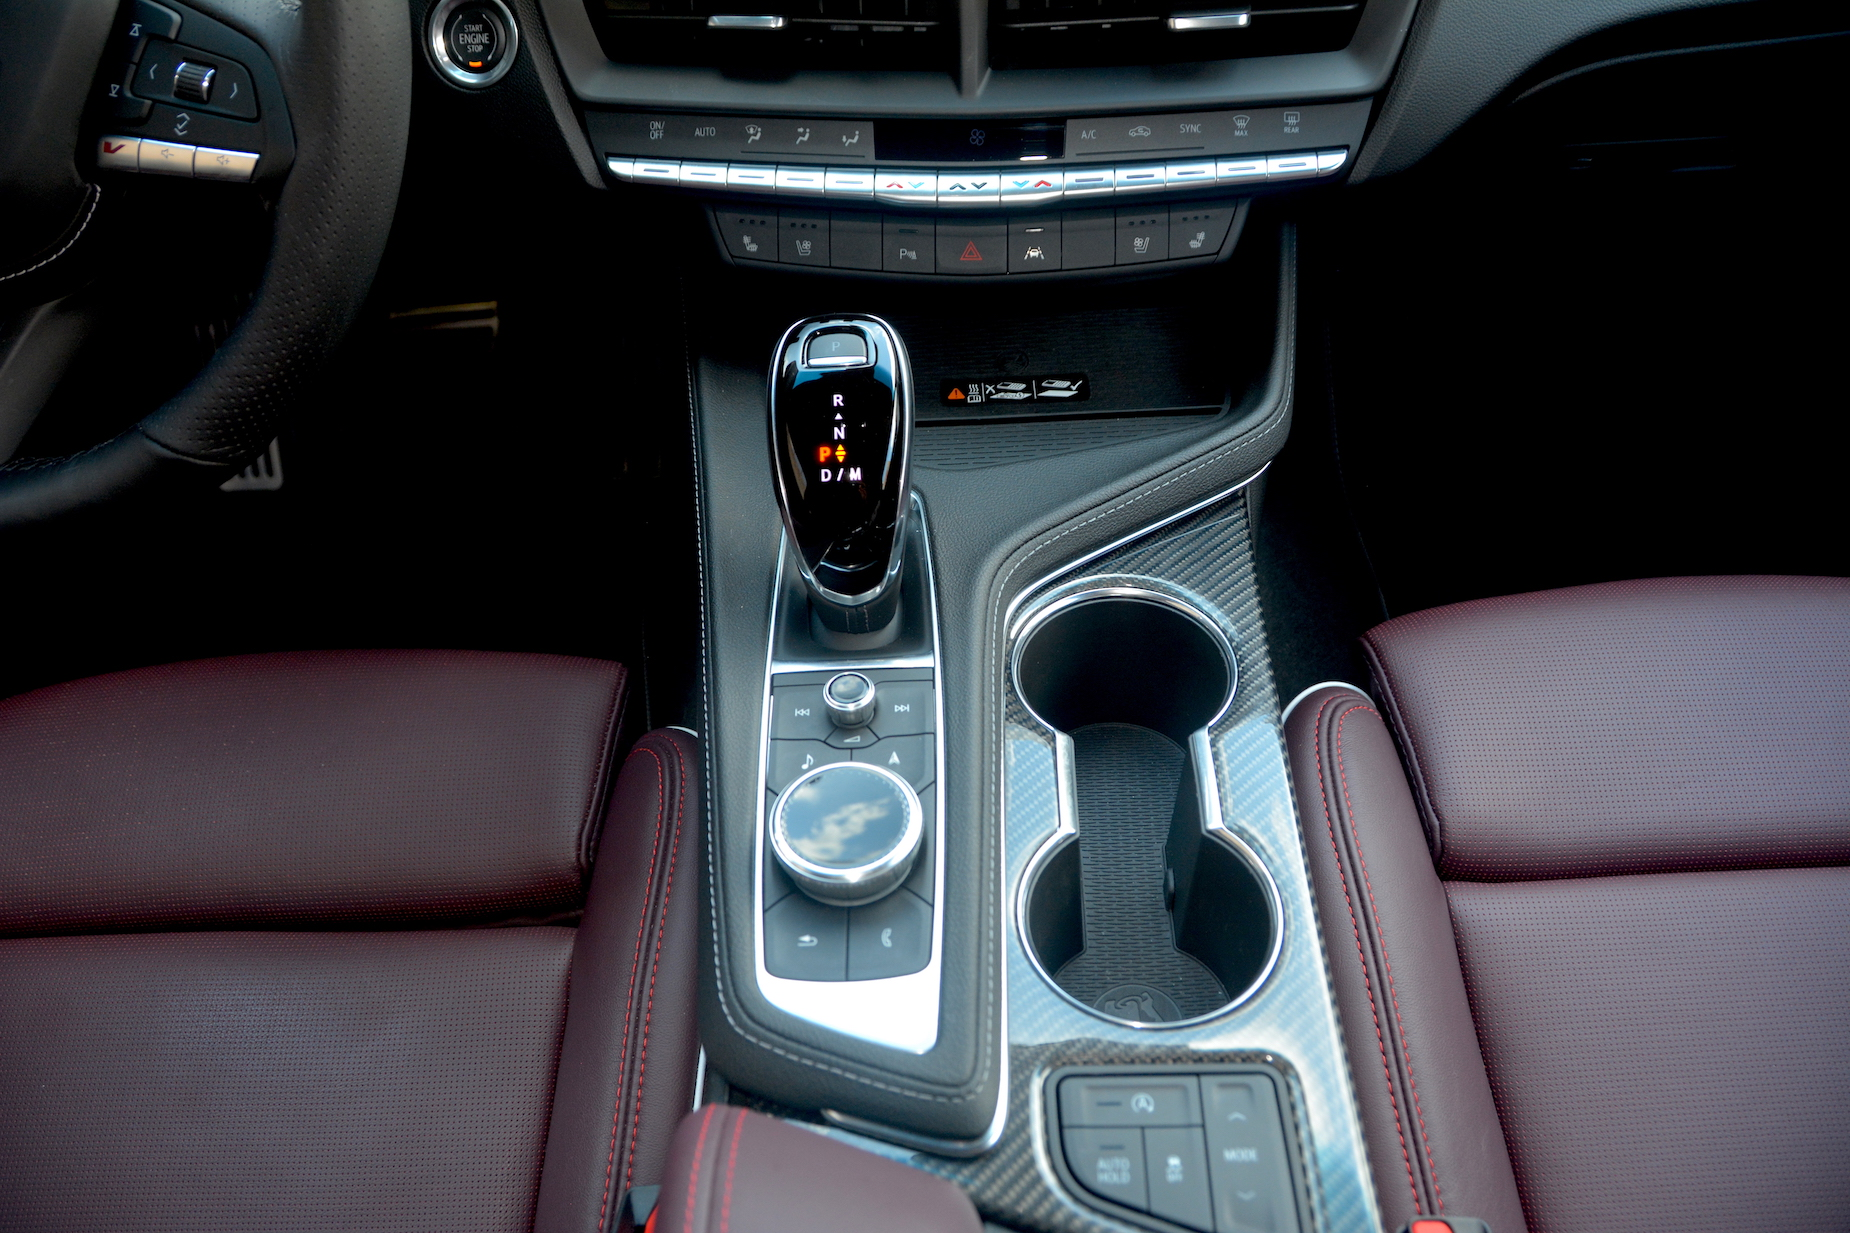 2021 Cadillac CT4-V cup holders